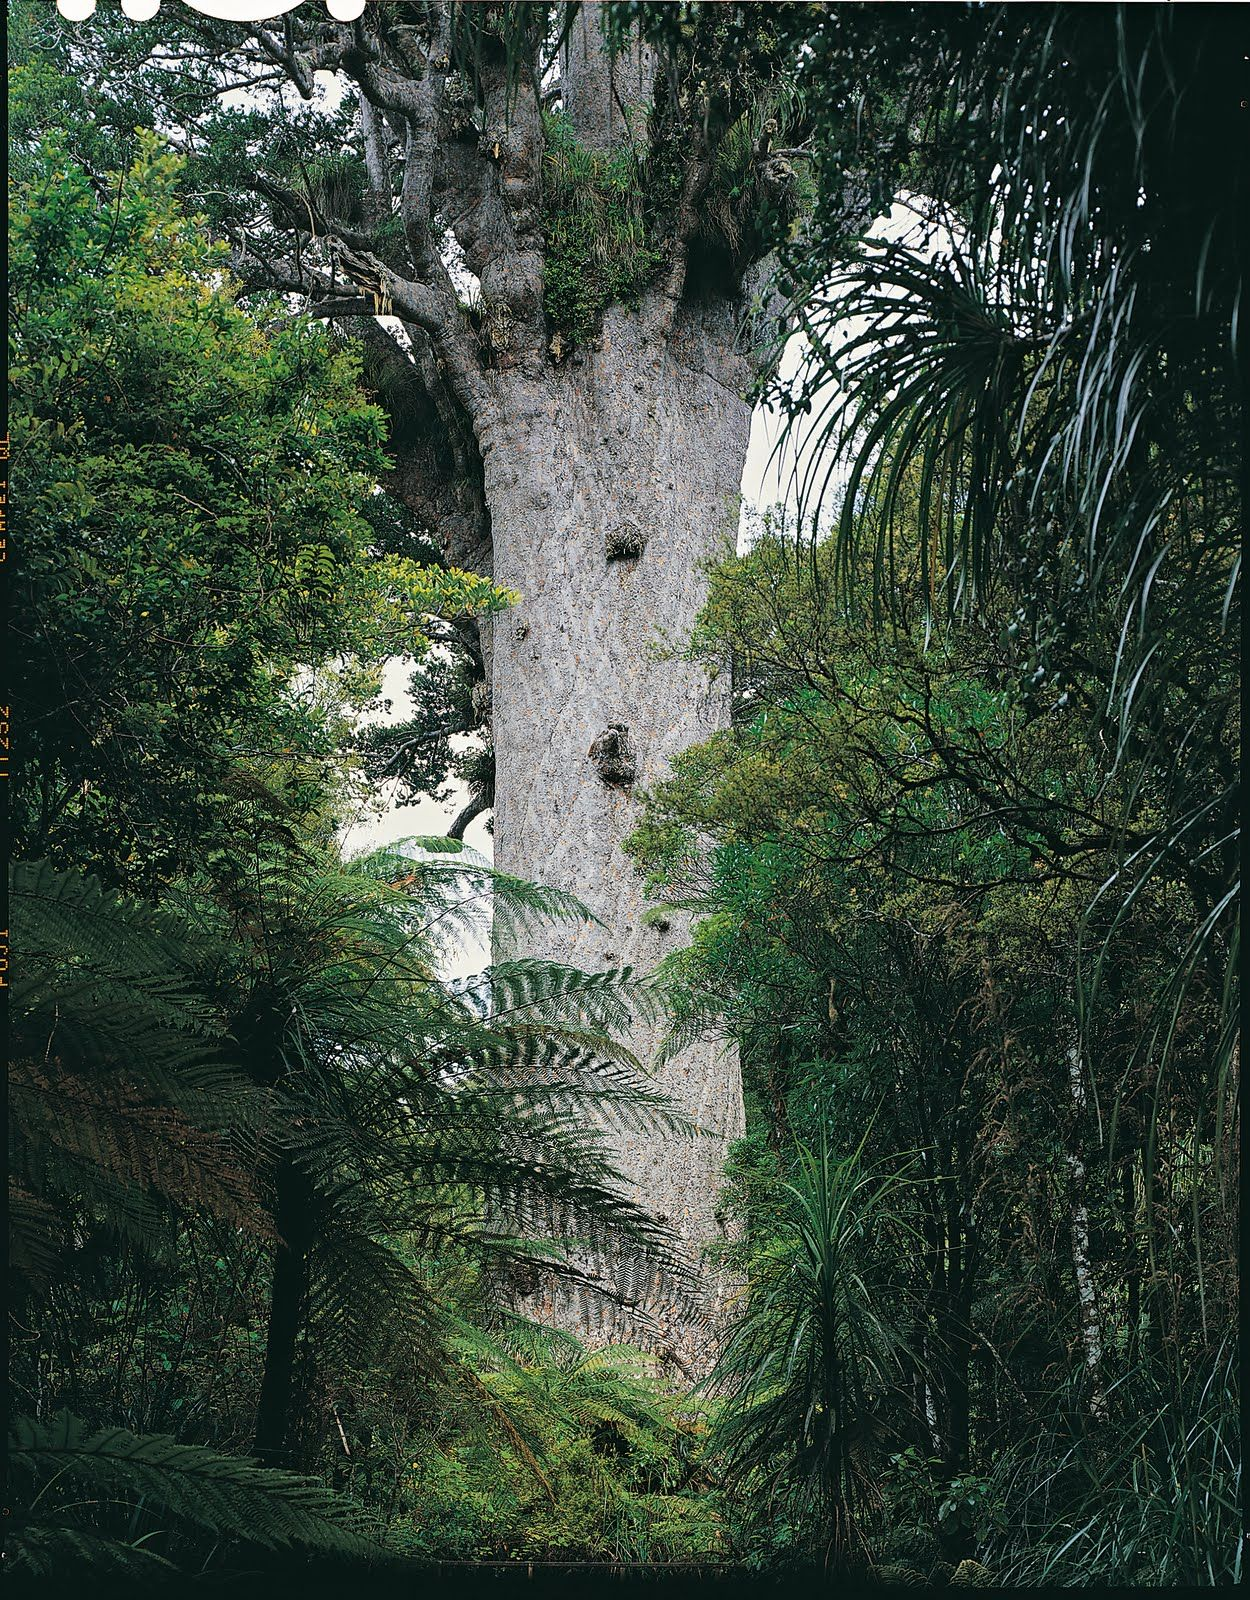 Tane Mahuta Is A Giant Kauri Tree In The Waipoua Forest Of New